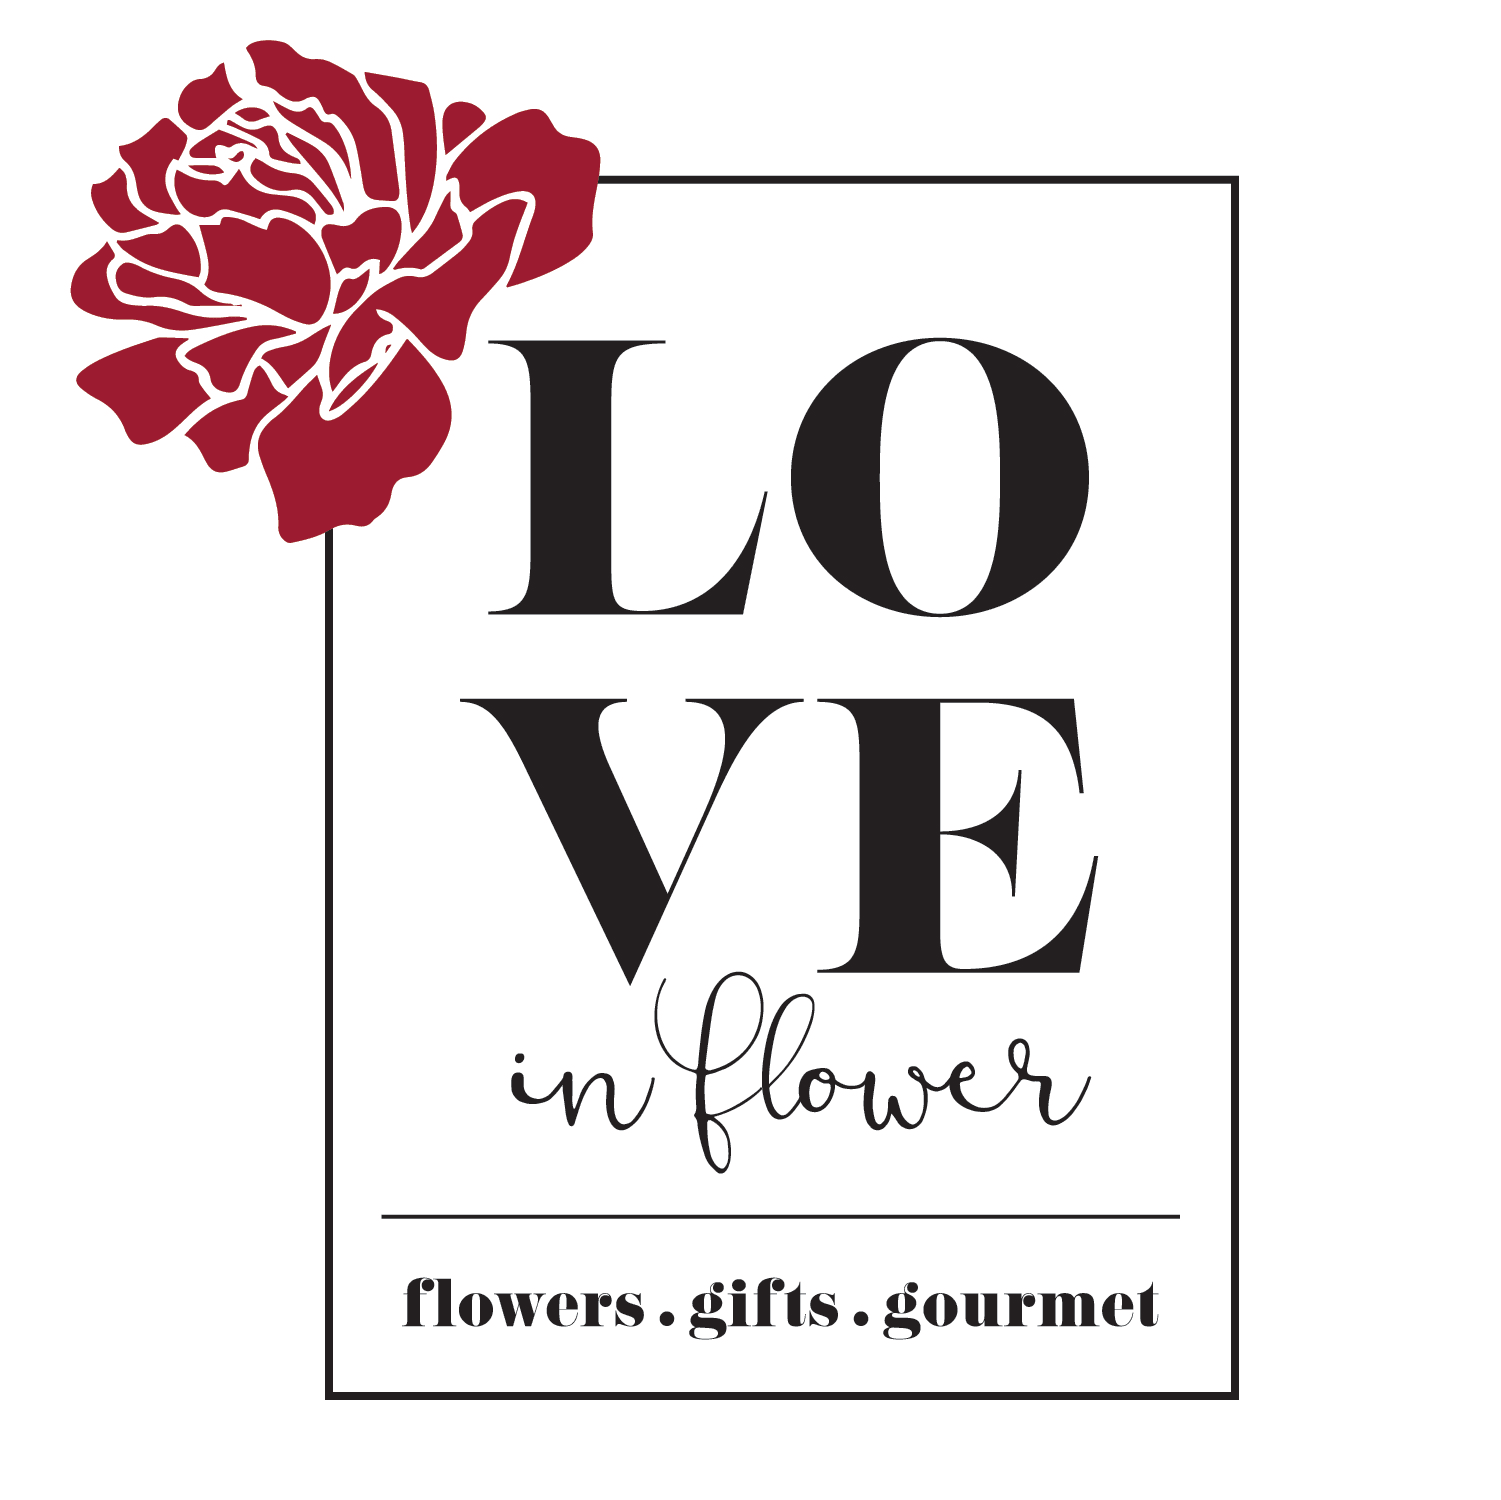 About love in flower reviews hours delivery in mount holly nj sending flowers means sending love show your love with a beautiful arrangement from love in flower well help you choose the perfect flowers for a izmirmasajfo